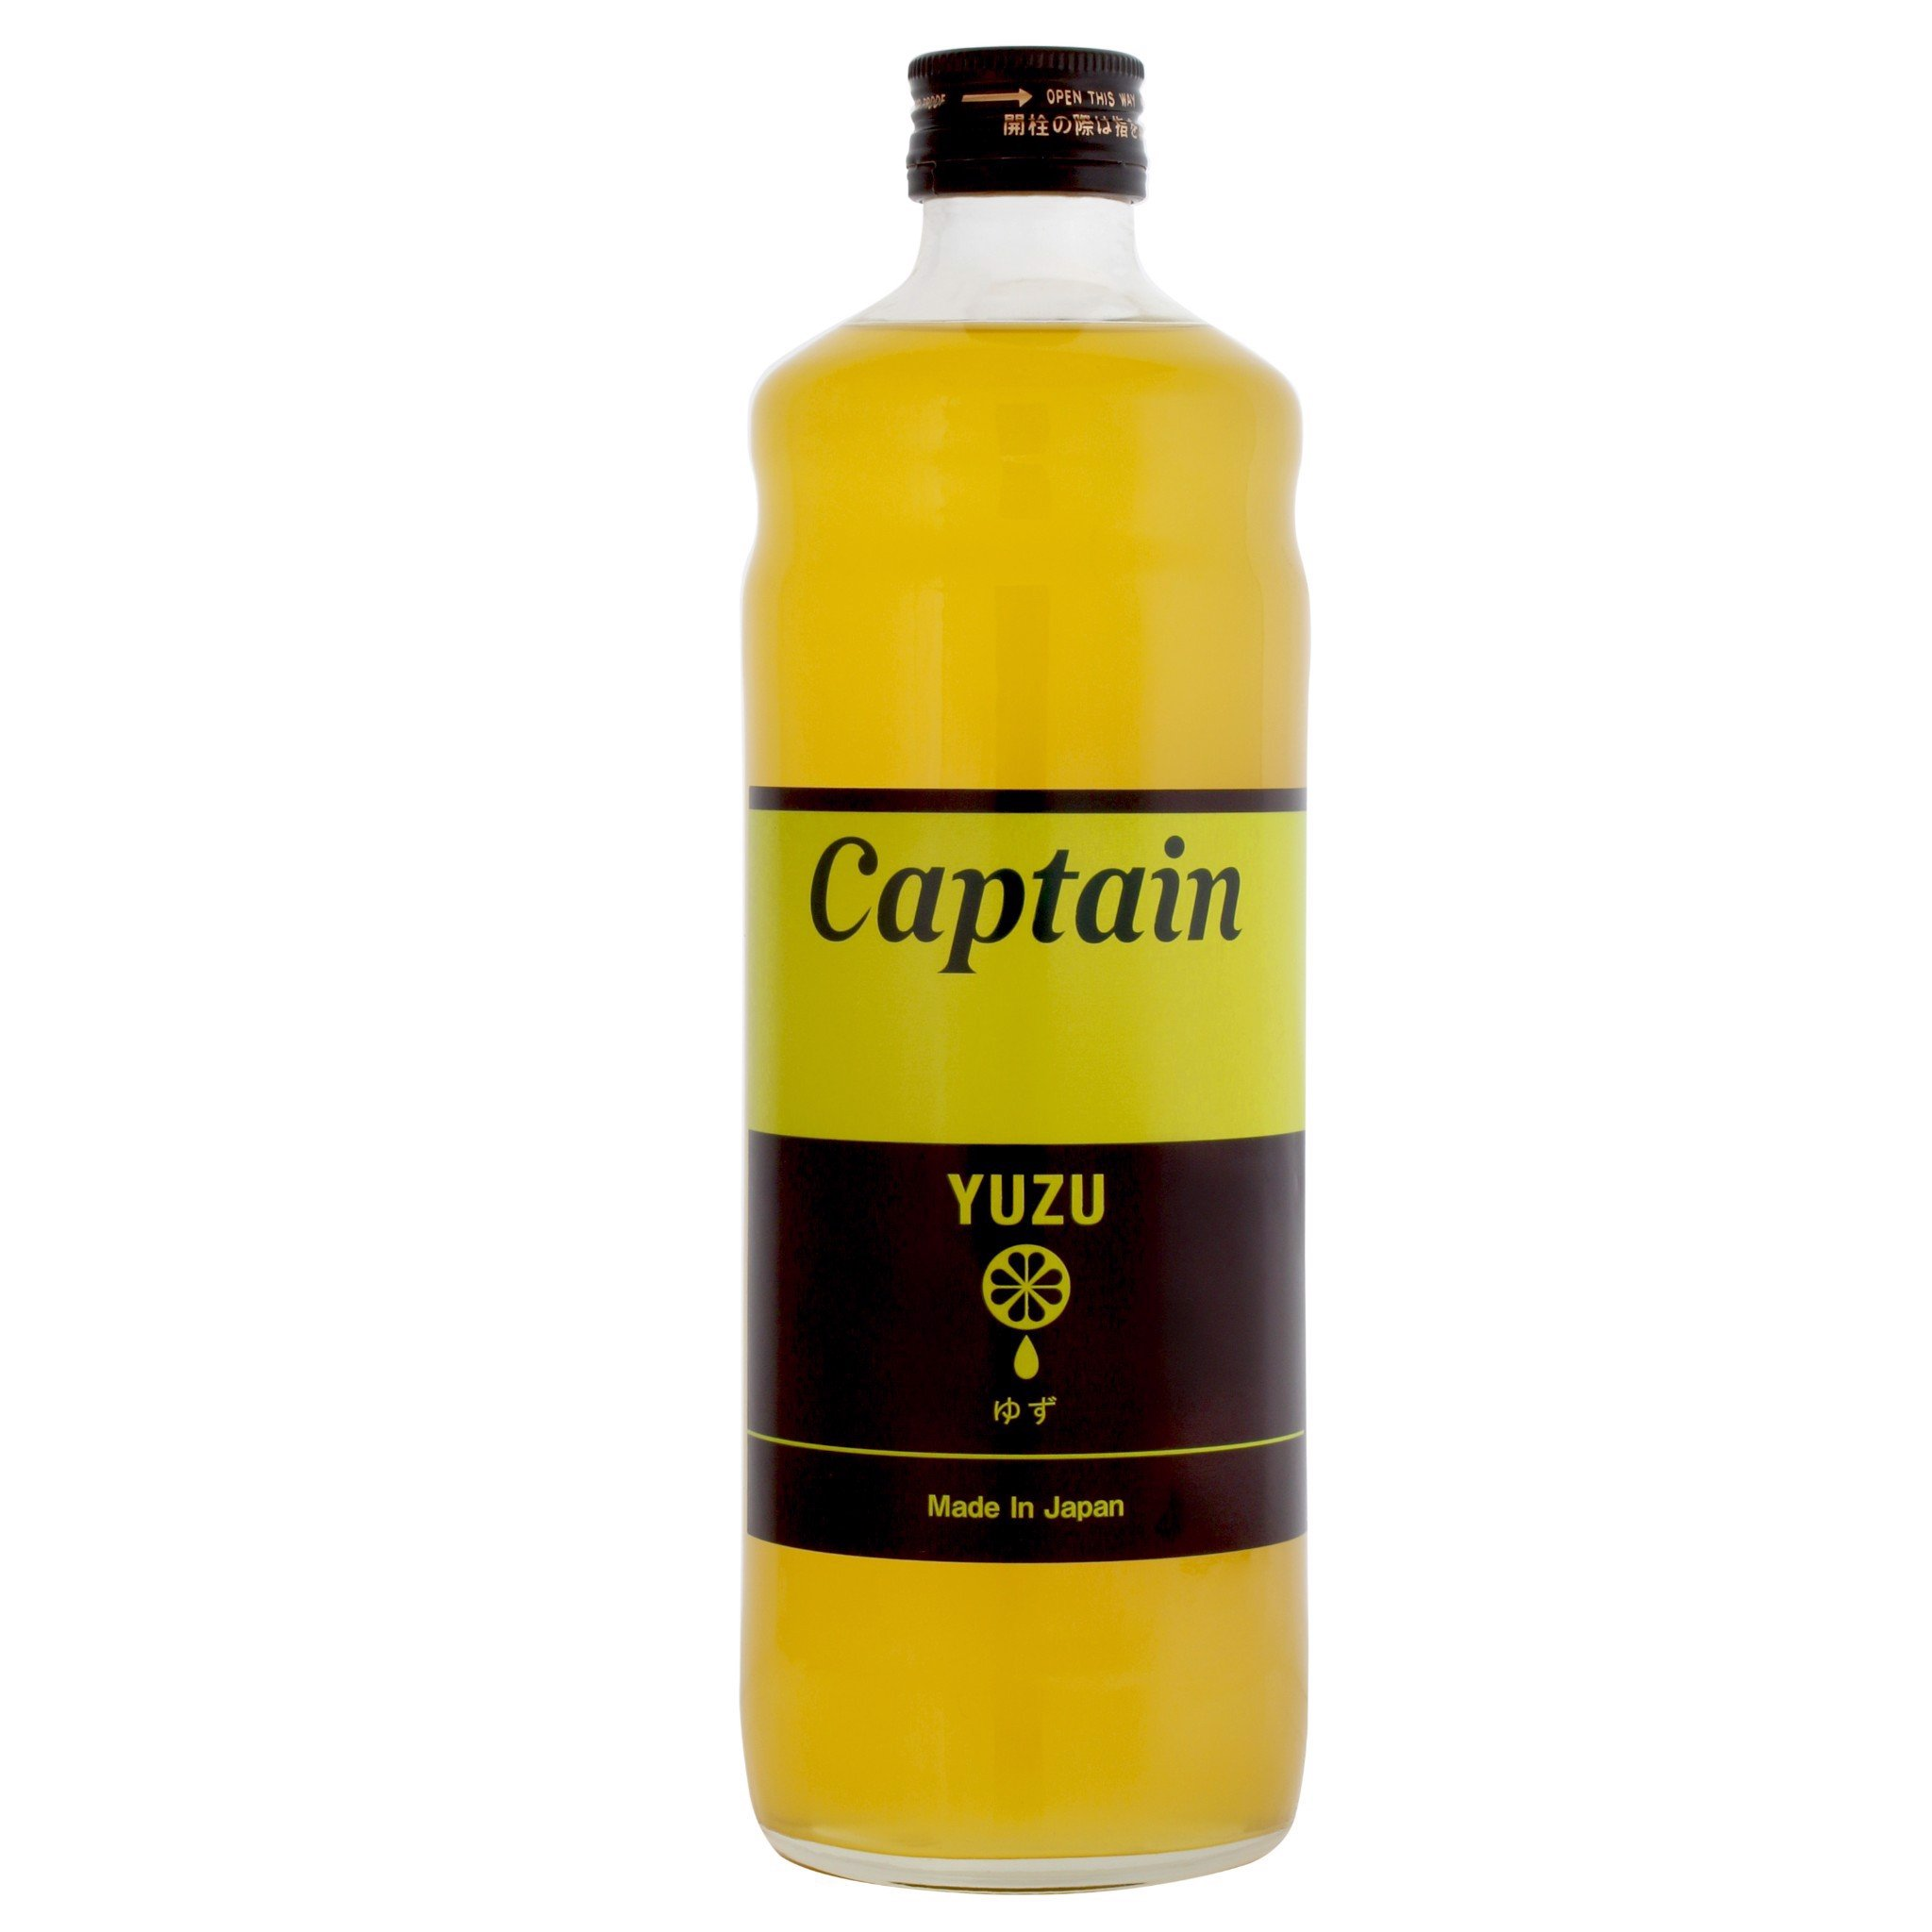 Syrup Yuzu - Captain